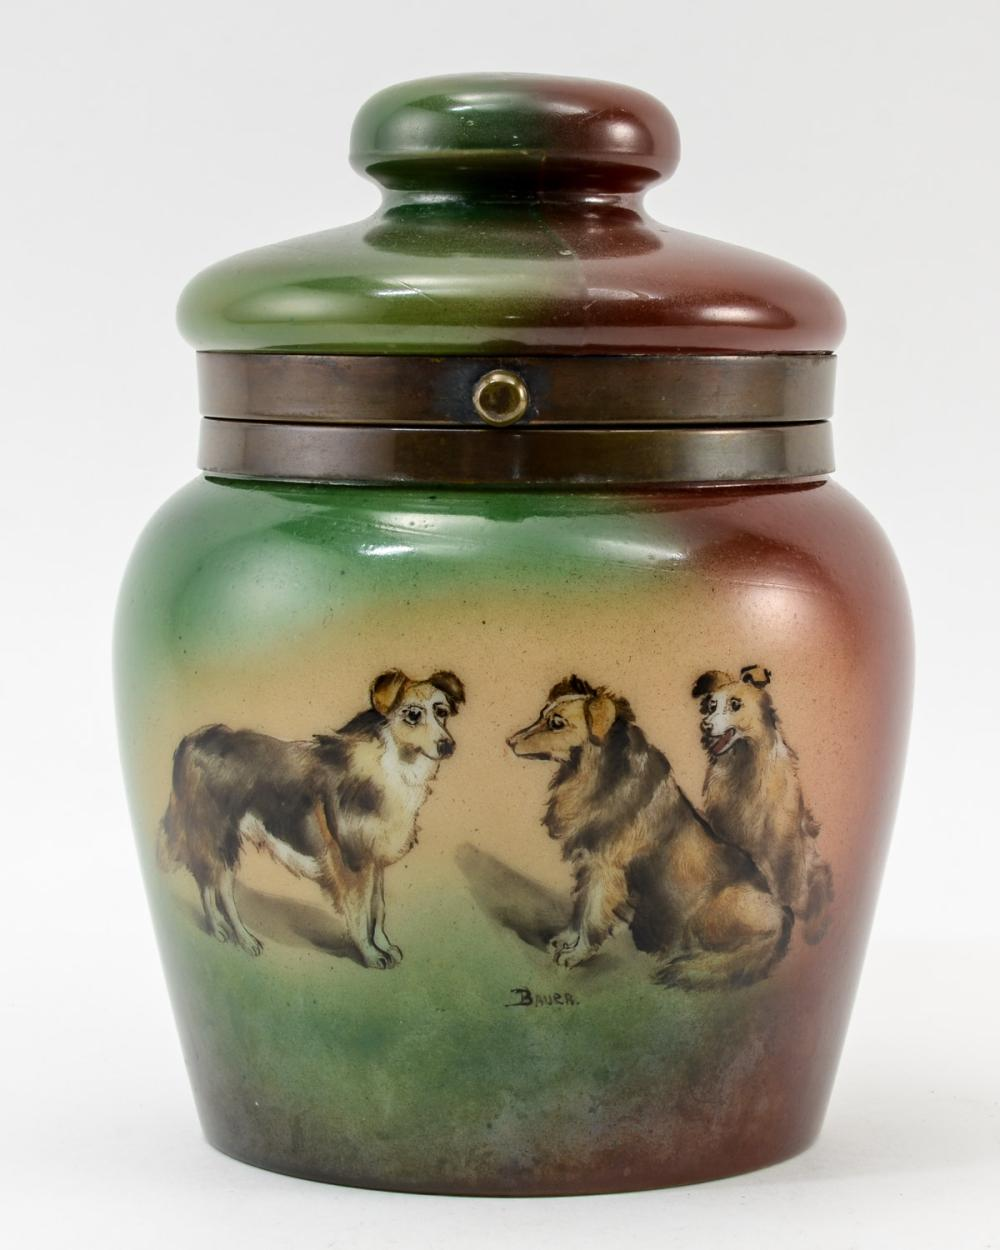 Handel Ware Glass Tobacco humidor w/ dogs